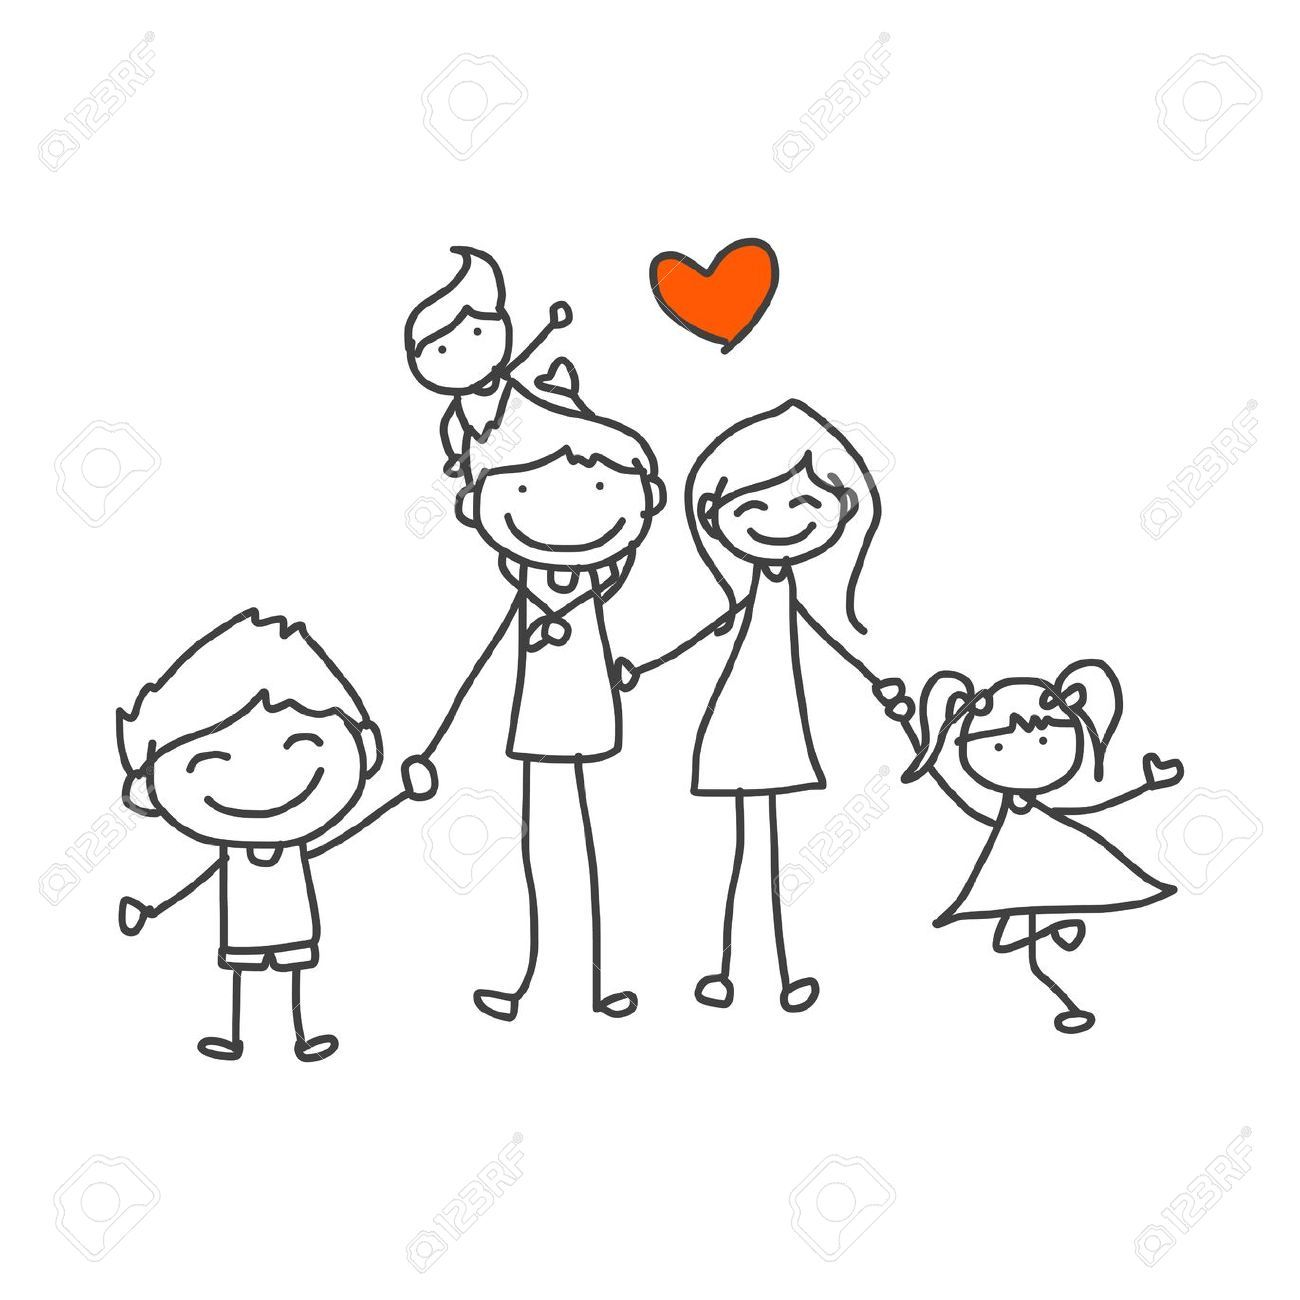 Hand Drawing Cartoon Happy Family Playing Cartoon Drawings Family Drawing How To Draw Hands